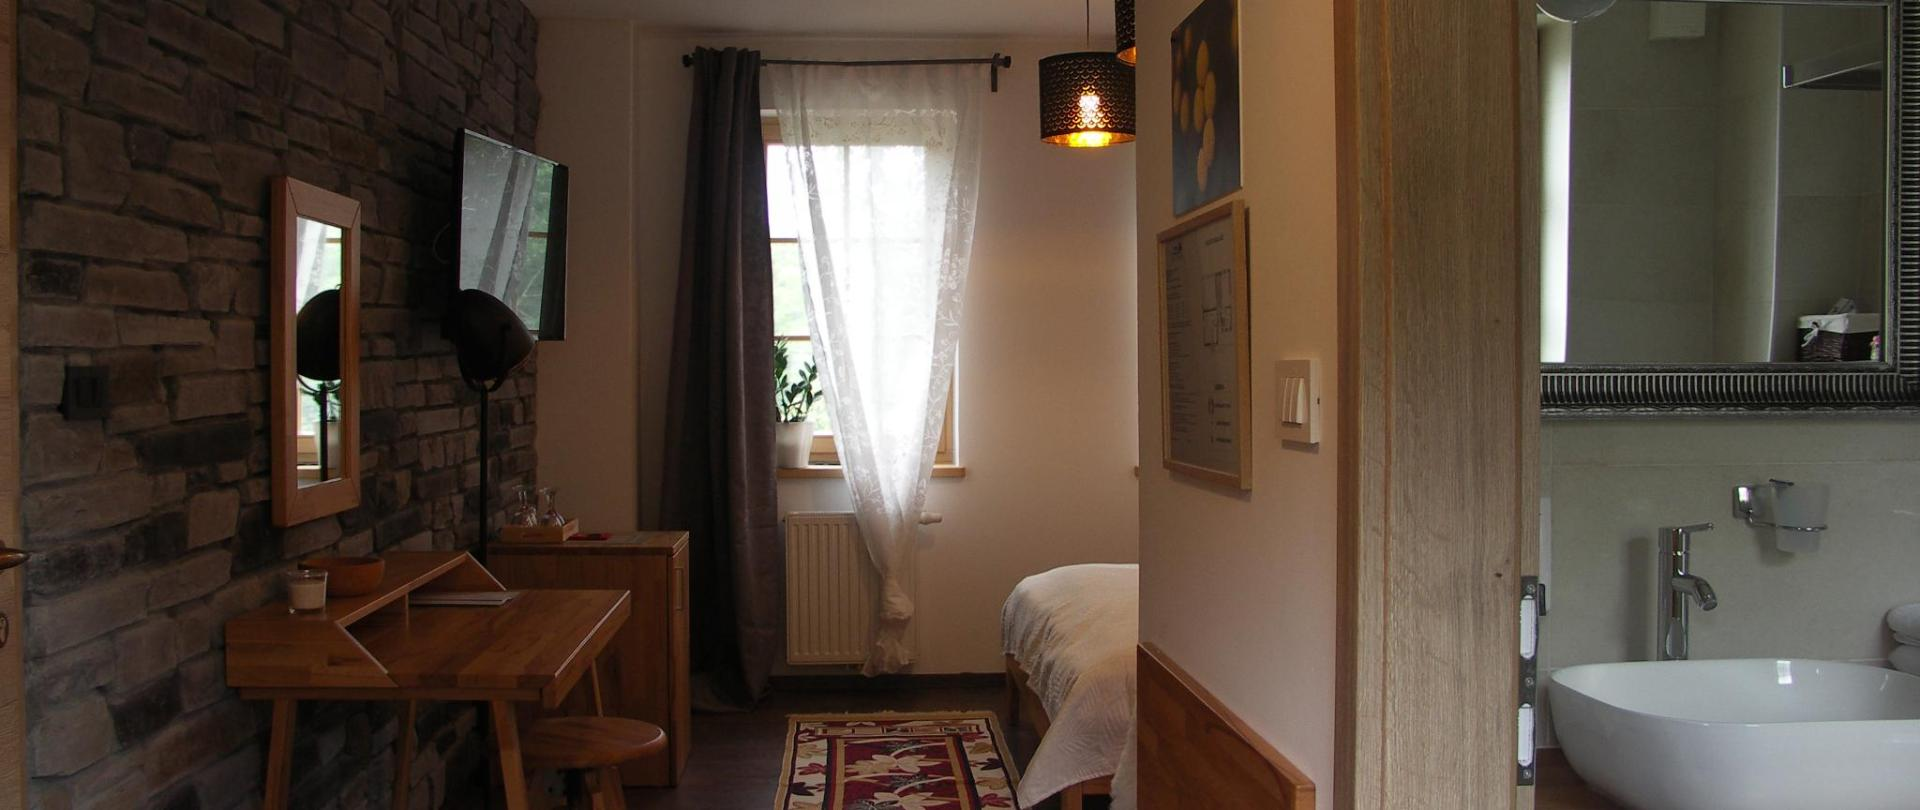 Villa Sumrak Rooms